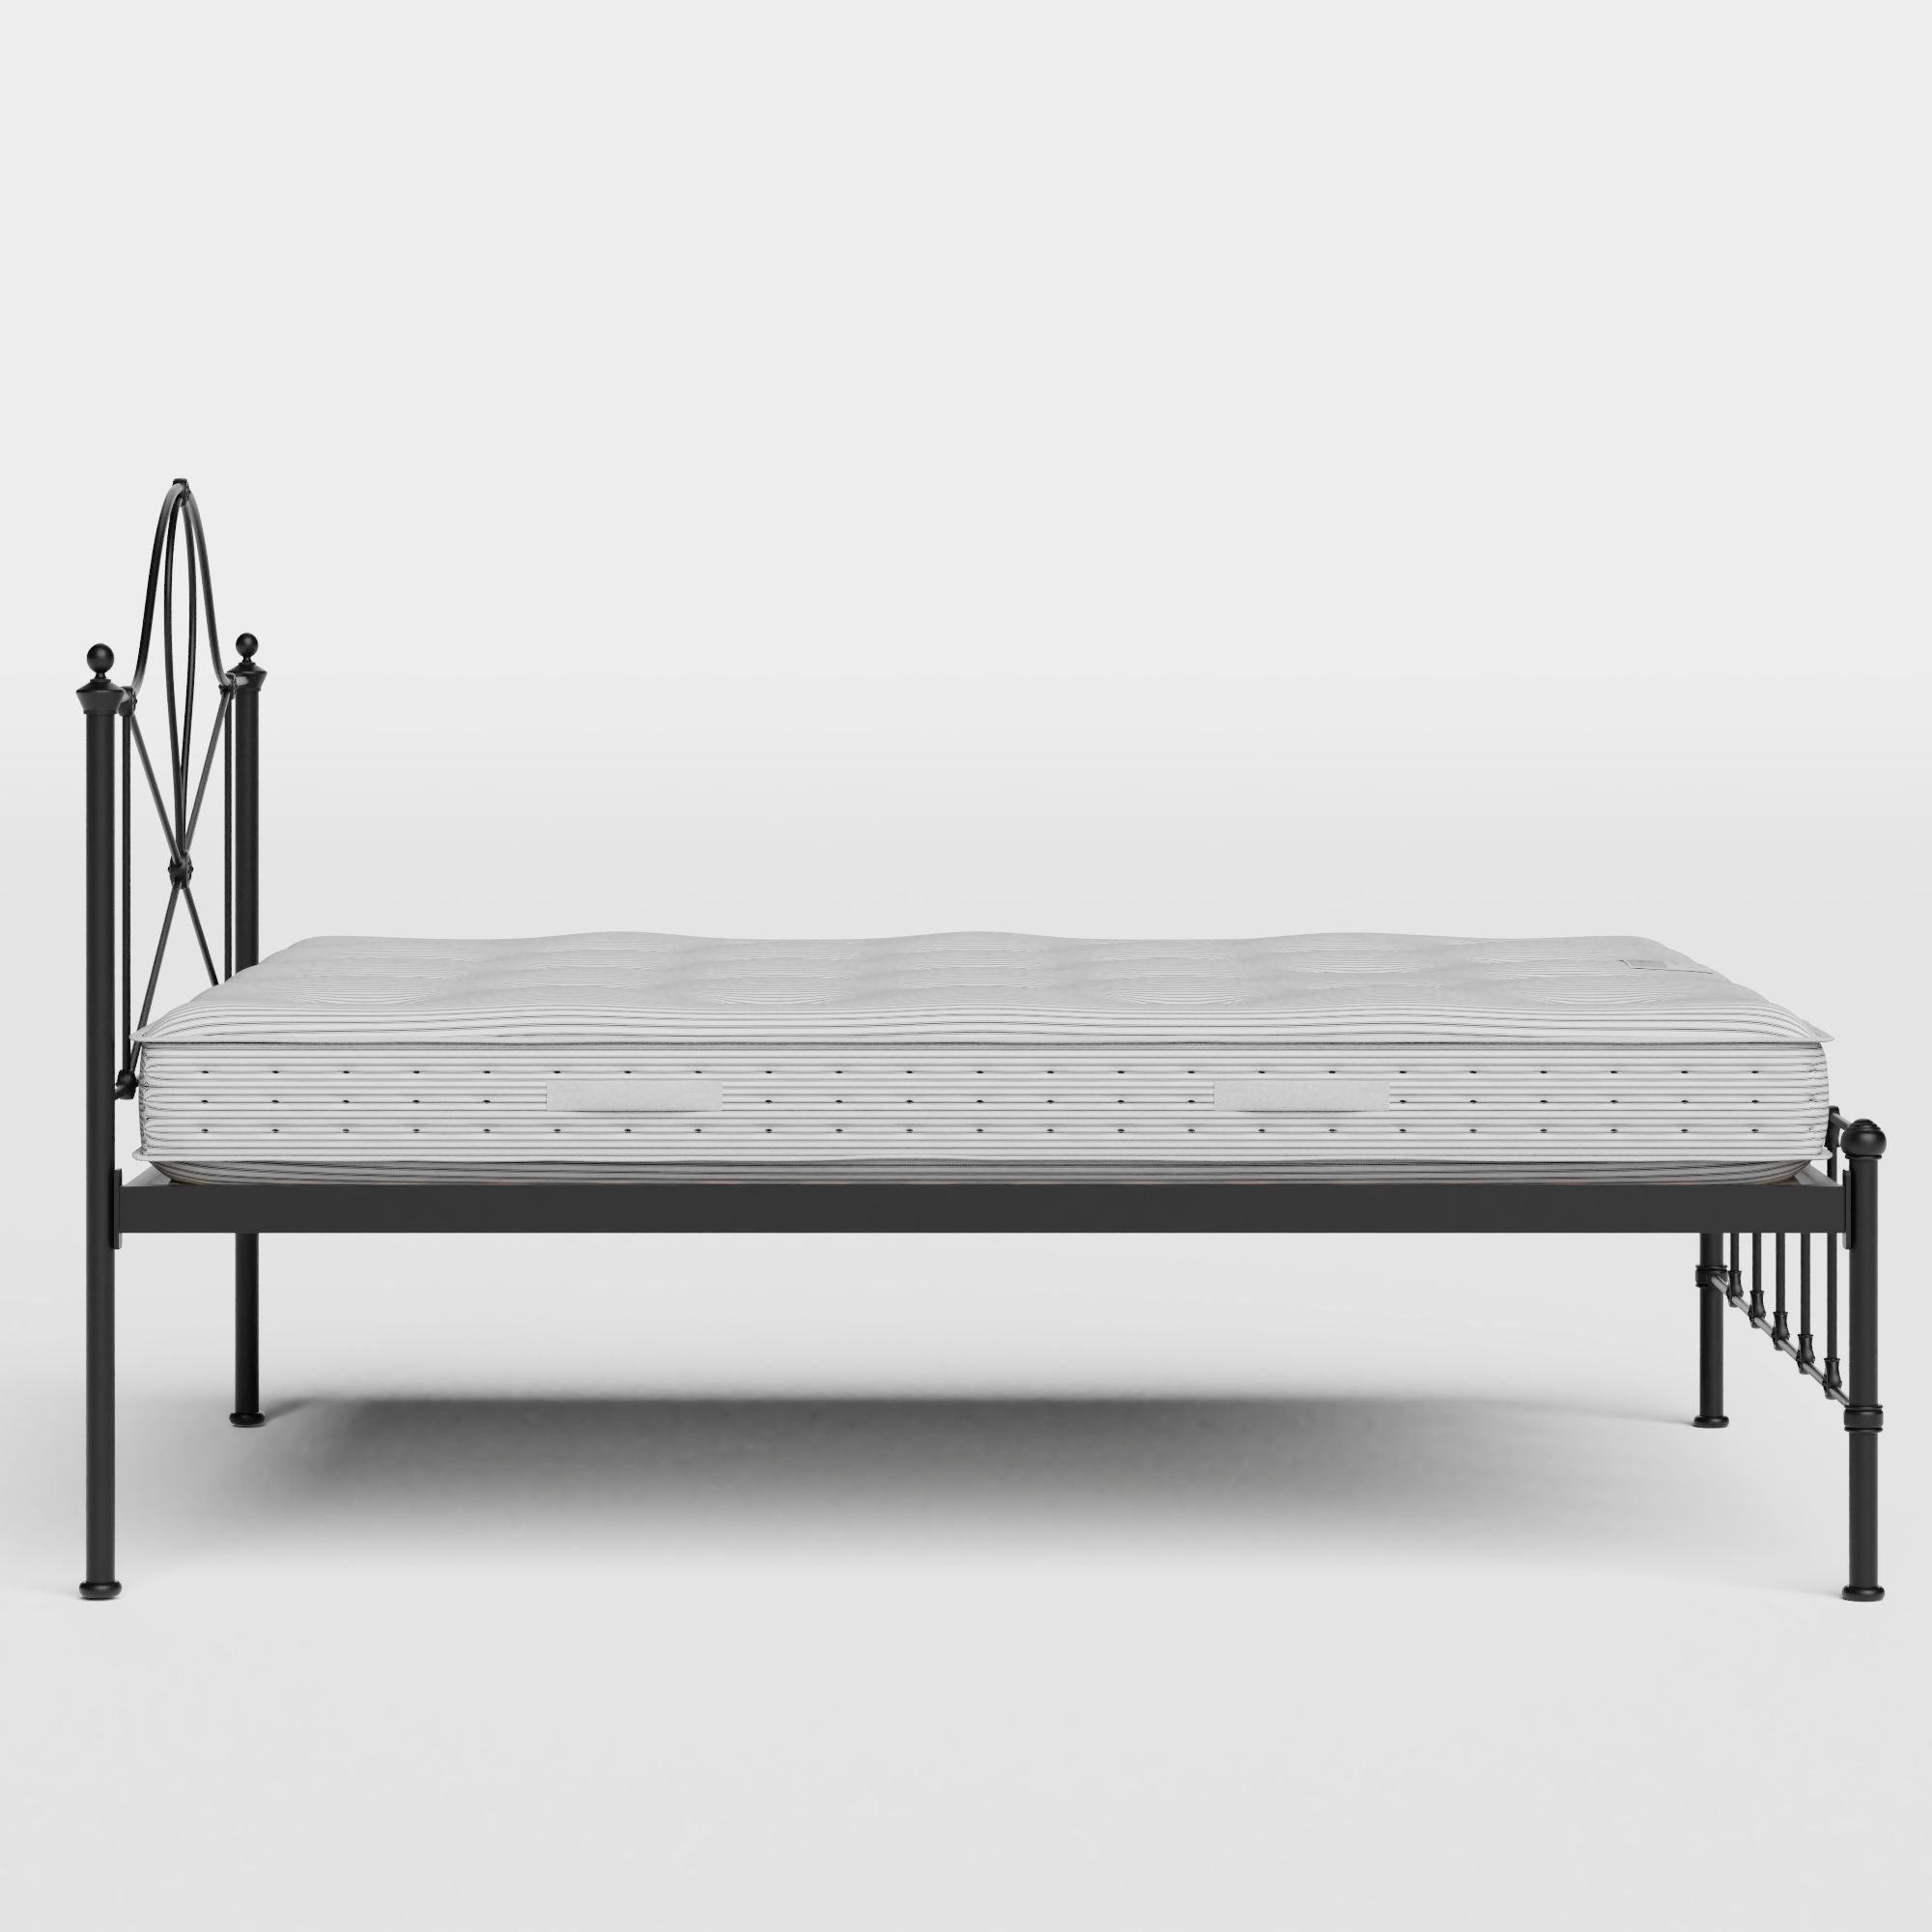 Athena iron/metal bed in black with Juno mattress